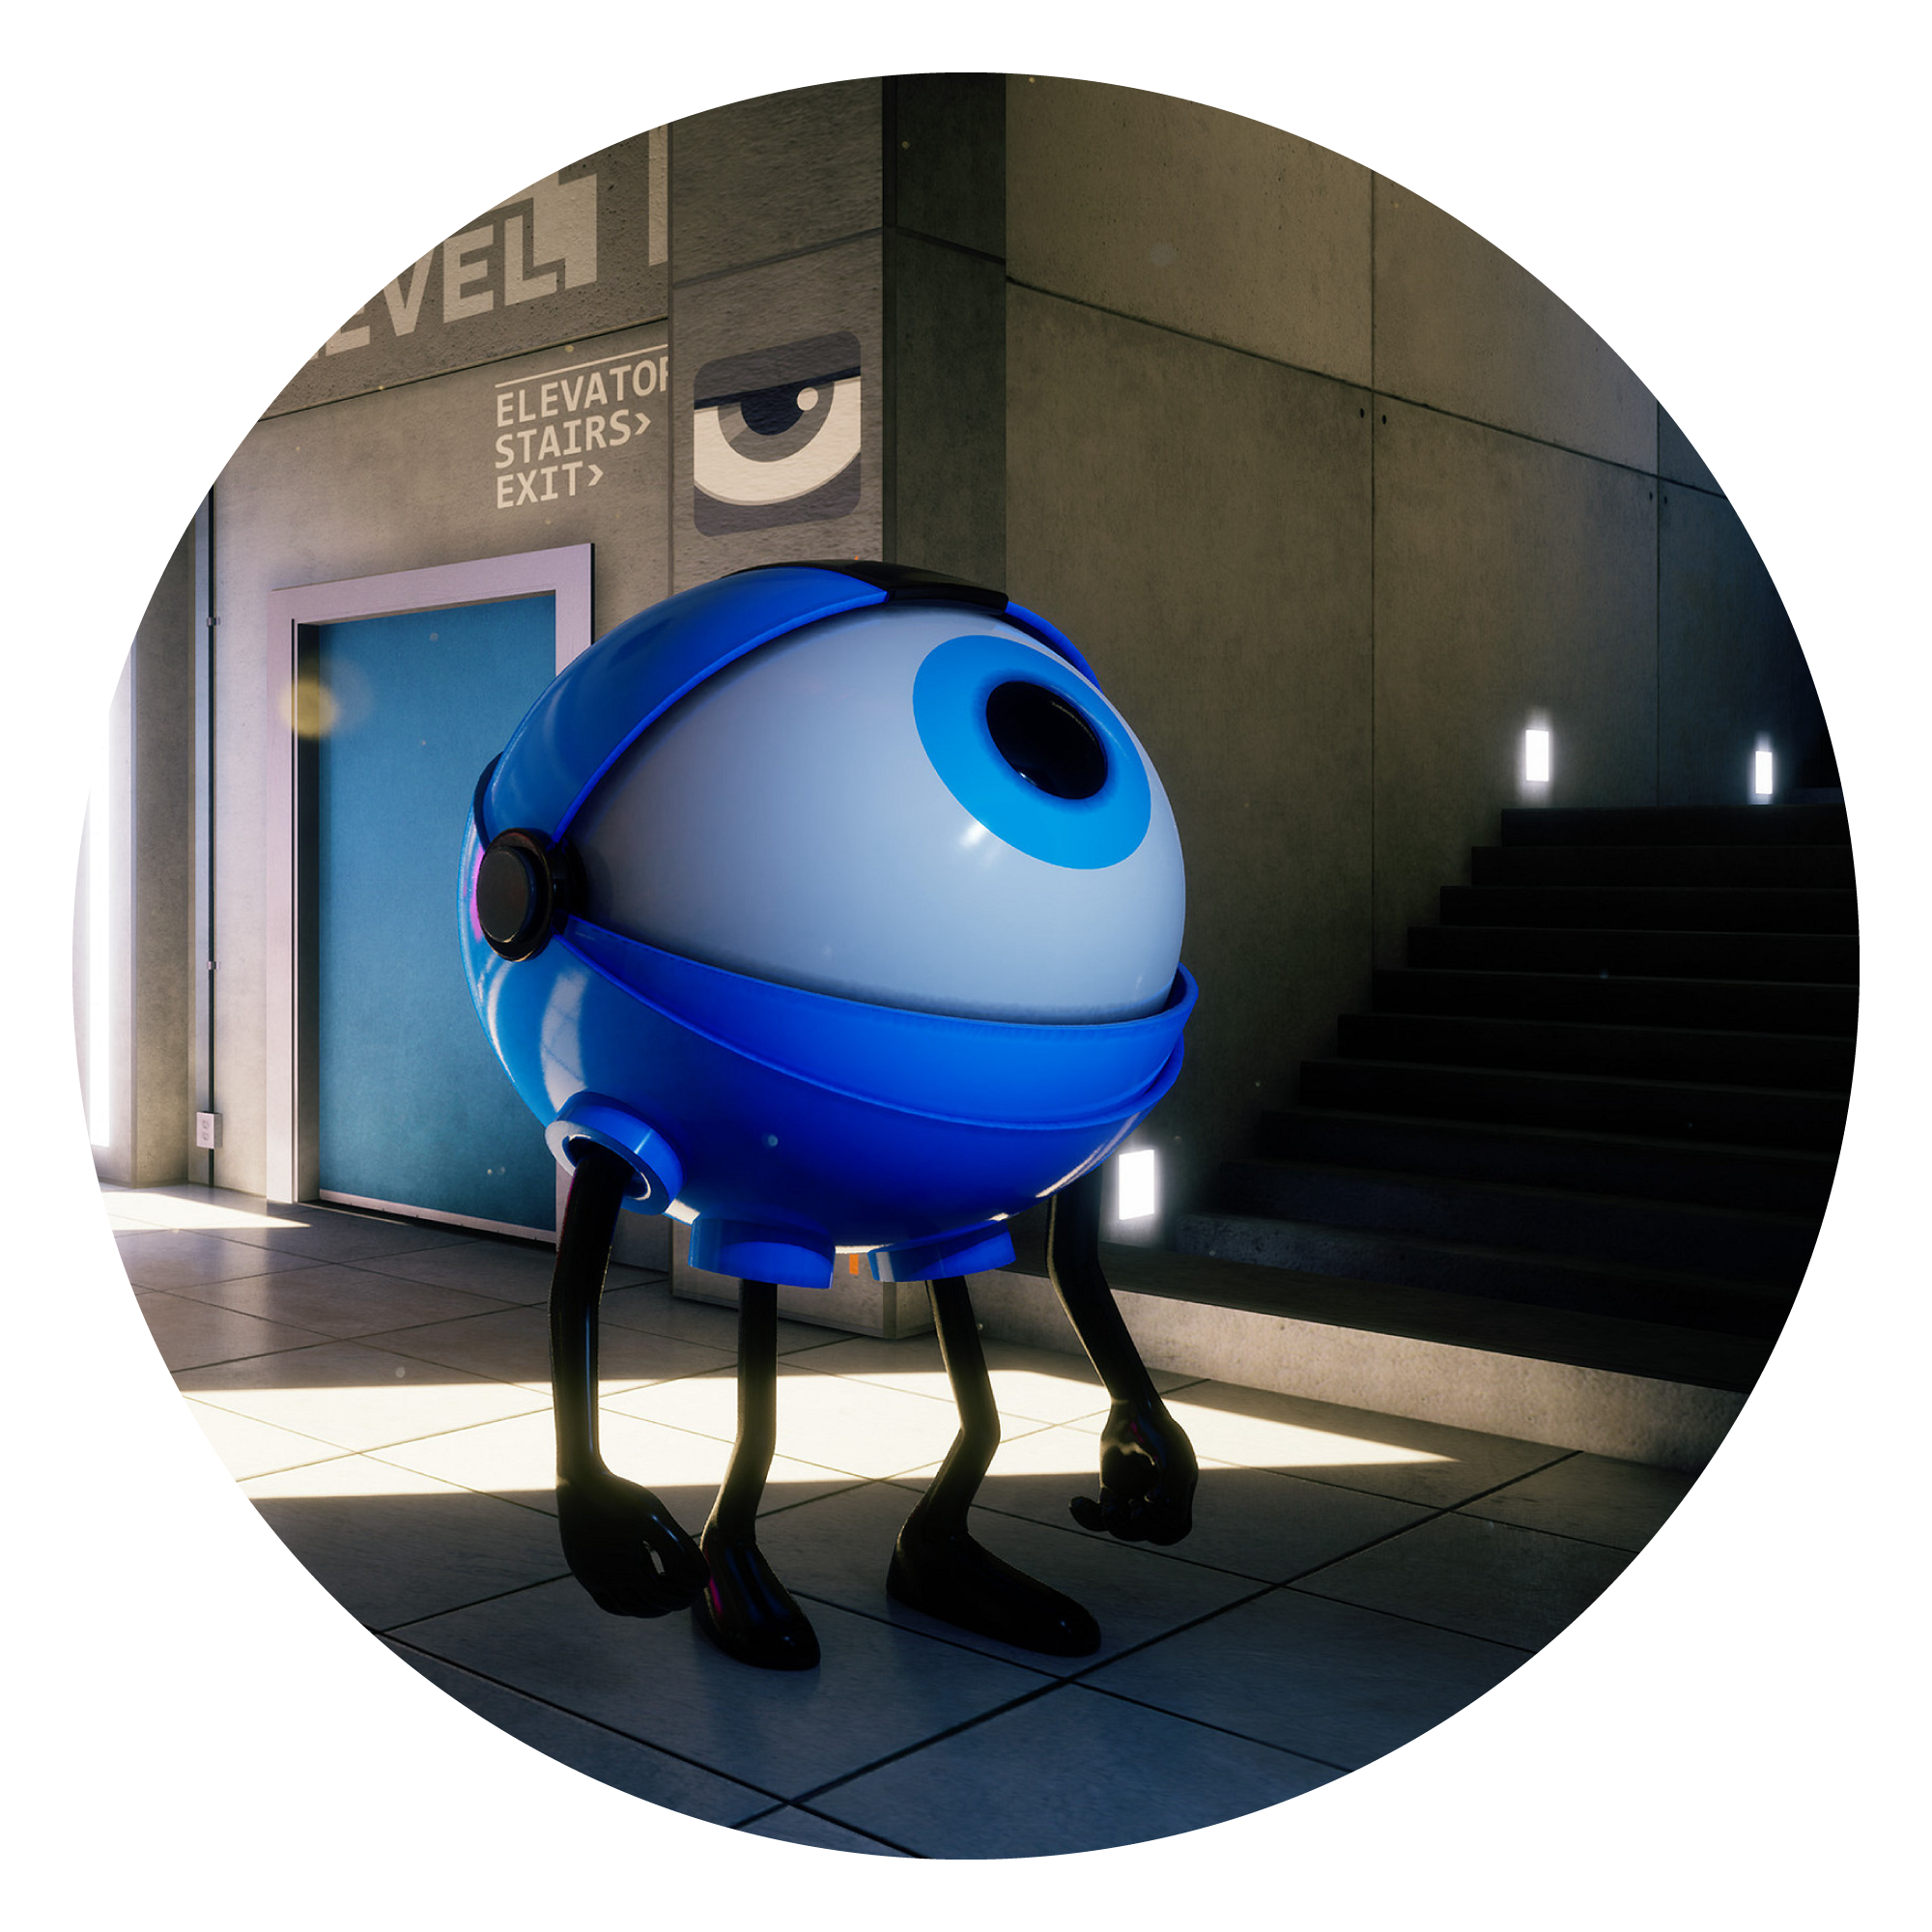 3D render by Steve Talkowski of creature with a giant blue eyeball as a head in hallway